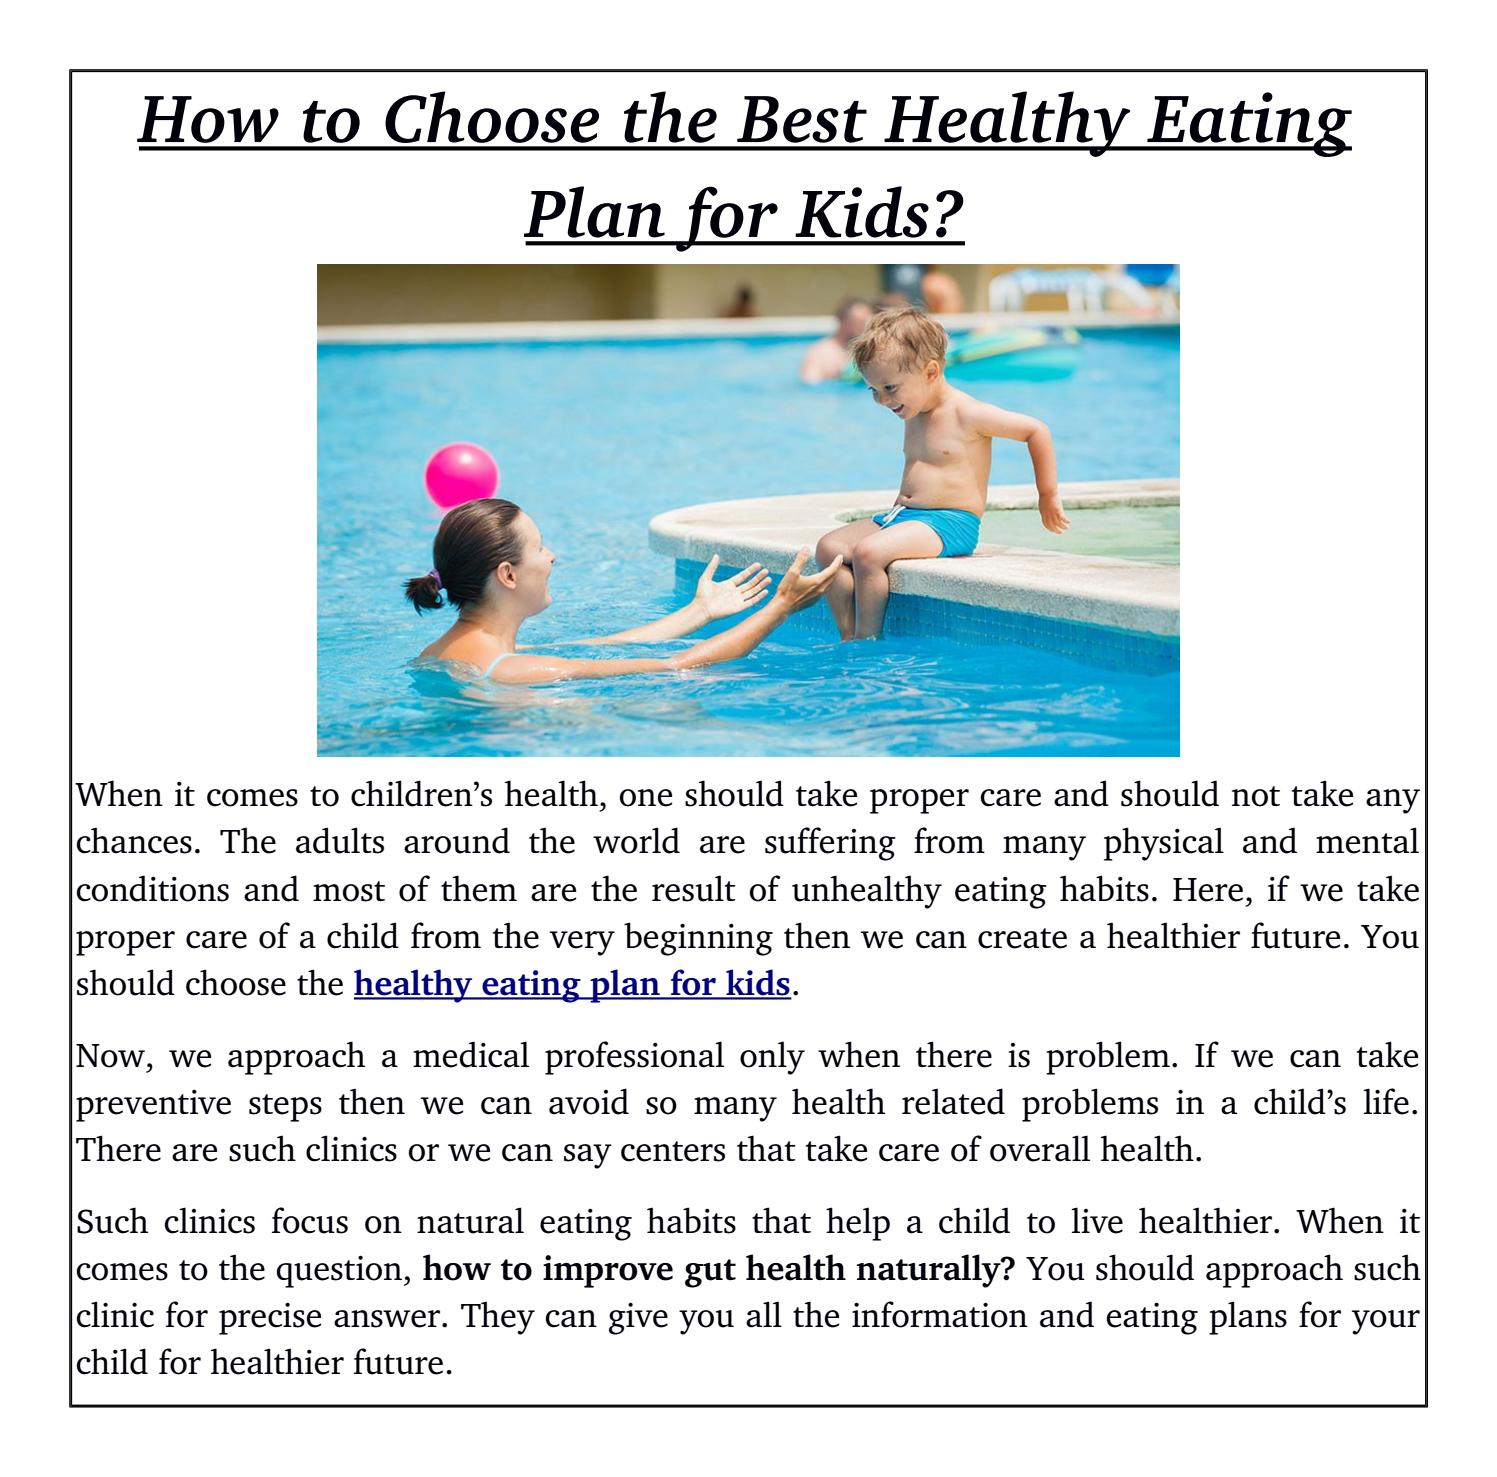 How to choose the best healthy eating plan for kids? by Kids Health